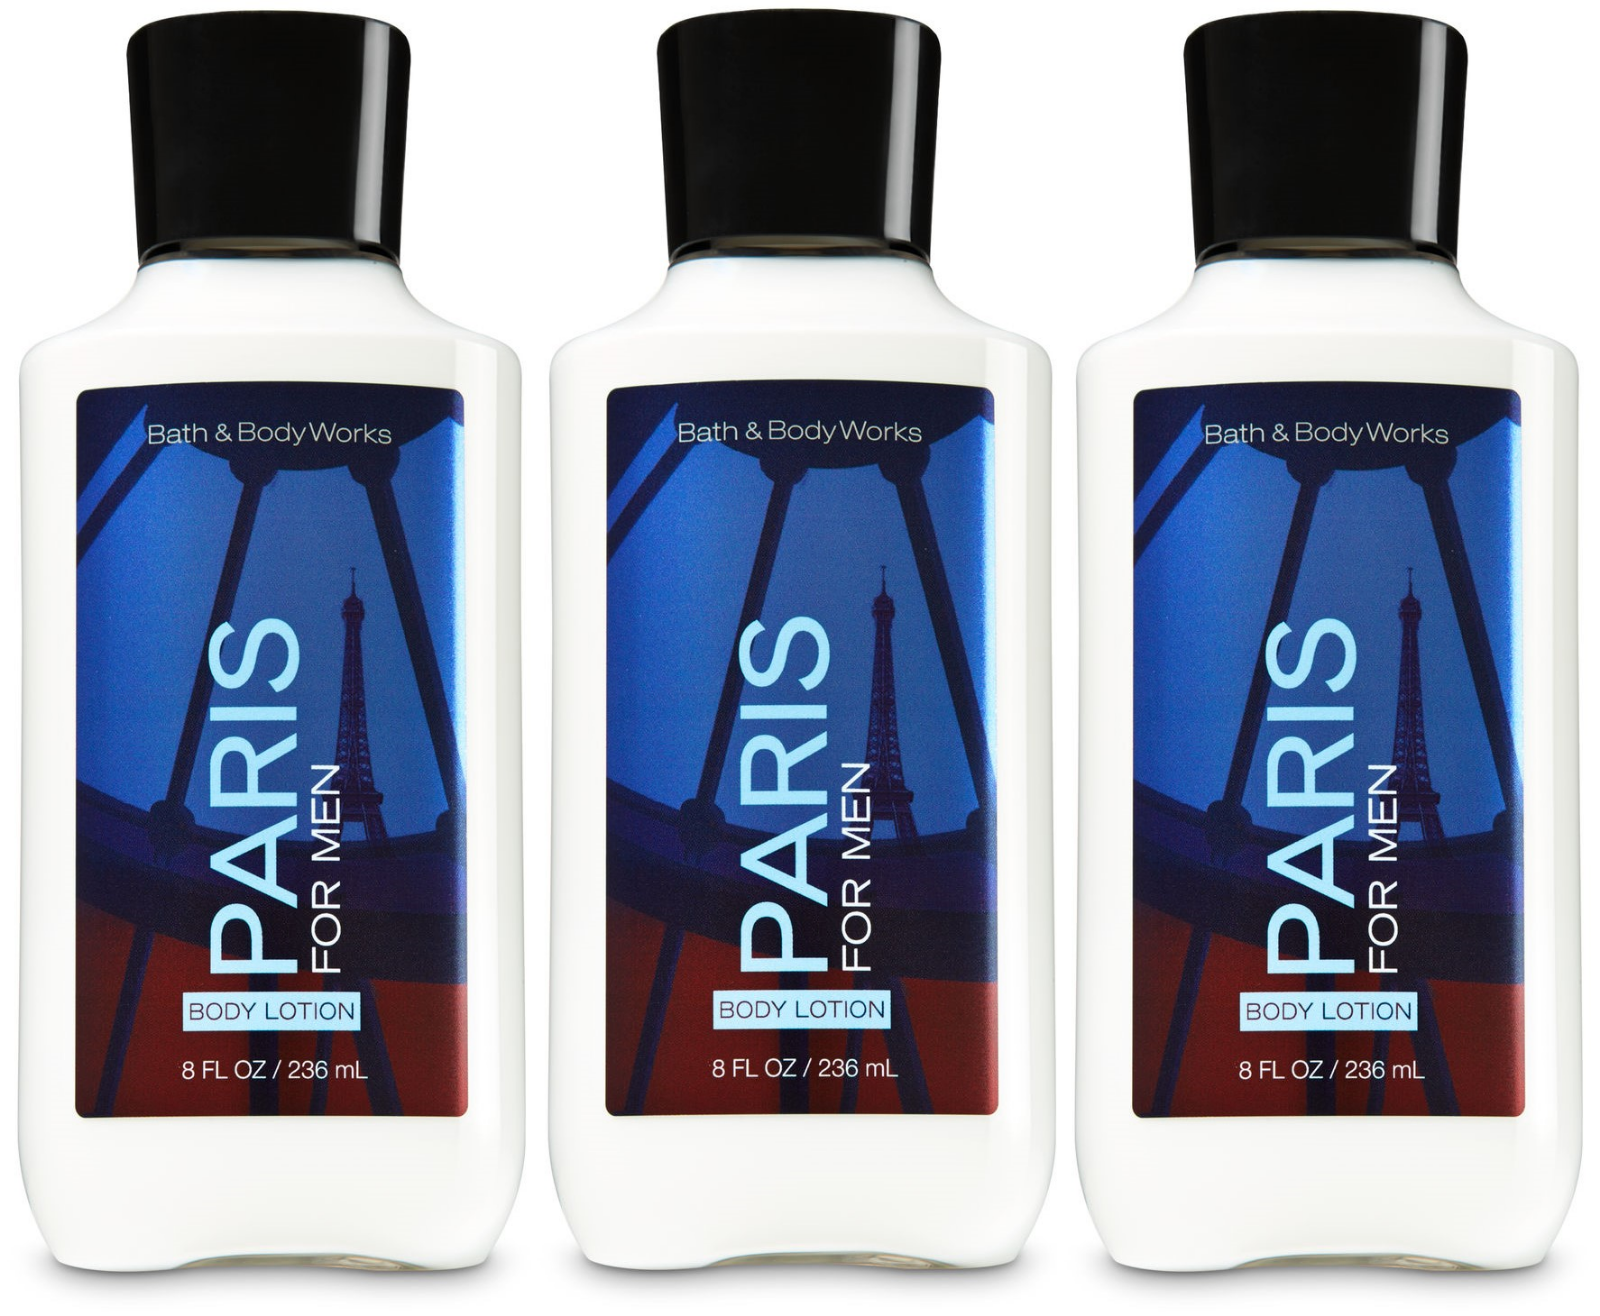 Primary image for Bath & Body Works Paris For Men Body Lotion 8 fl oz / 236 ml Set Of 3 Bottles